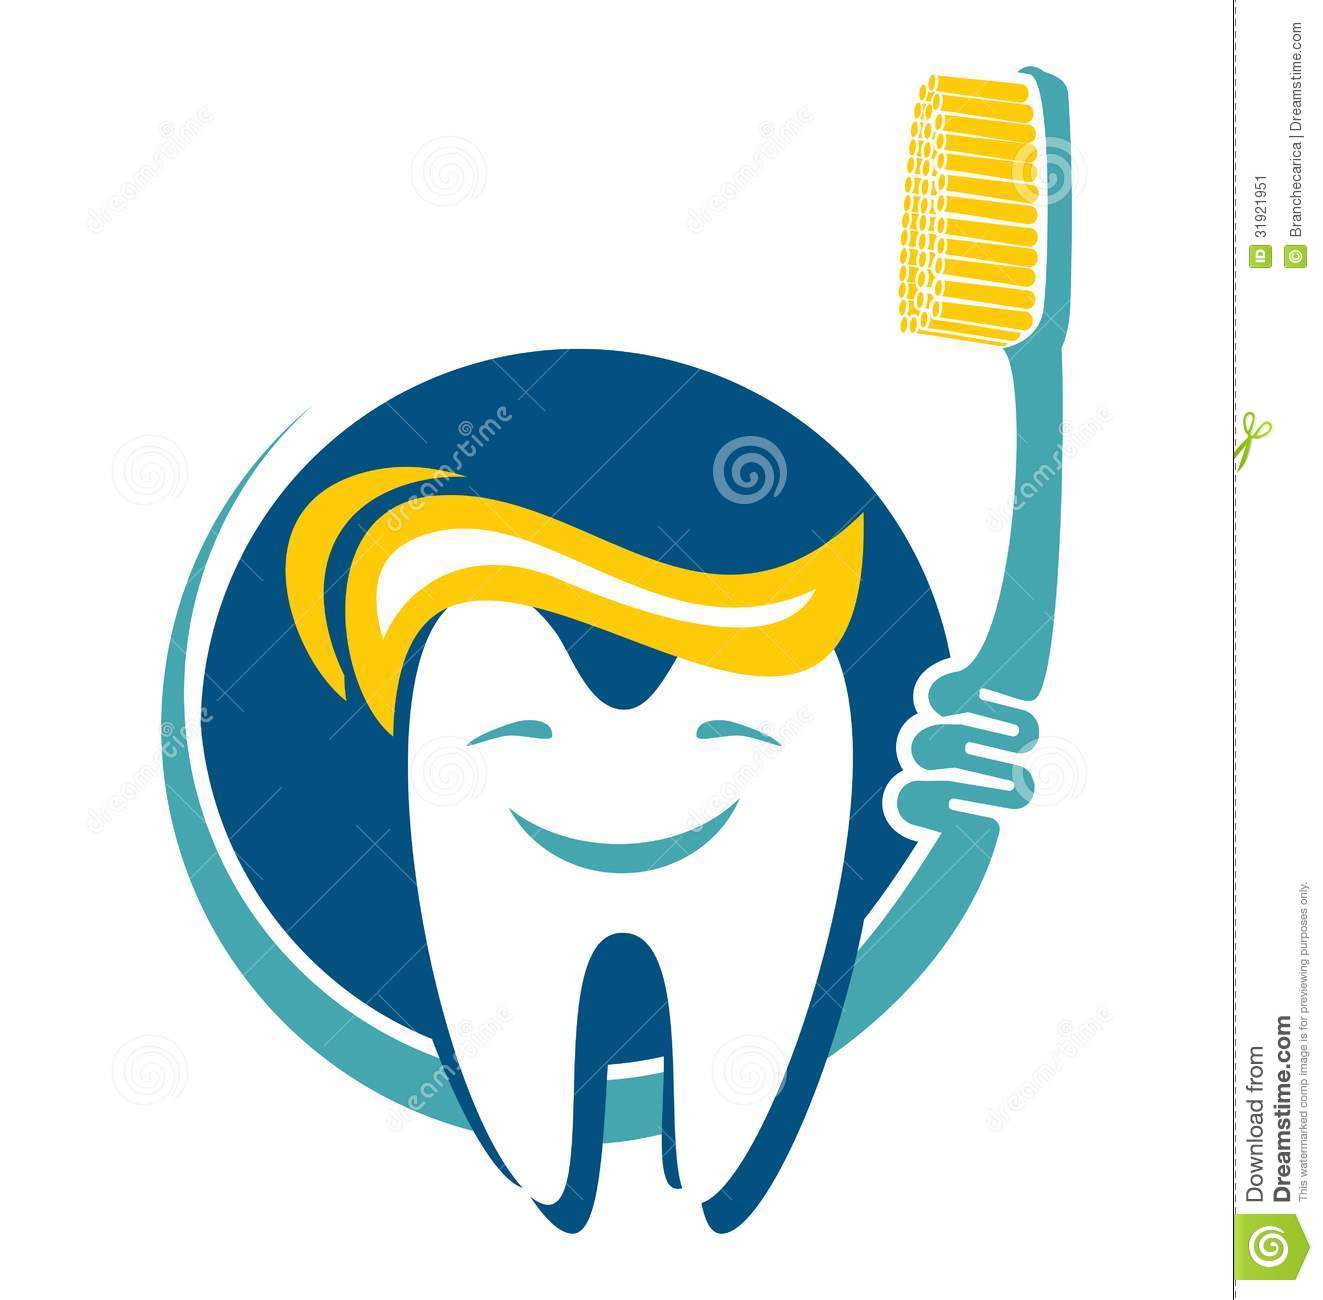 Royalty Free Stock Photos Cute Cartoon Superhero Tooth Illustration Image33243008 additionally Tooth Zoom 725430 also Alloy Steel Carabiner Buckle Climbing Safety Harness Lanyard Belt in addition Health And Hygiene 17899810 likewise Coordinated School Health Progra. on oral care clip art